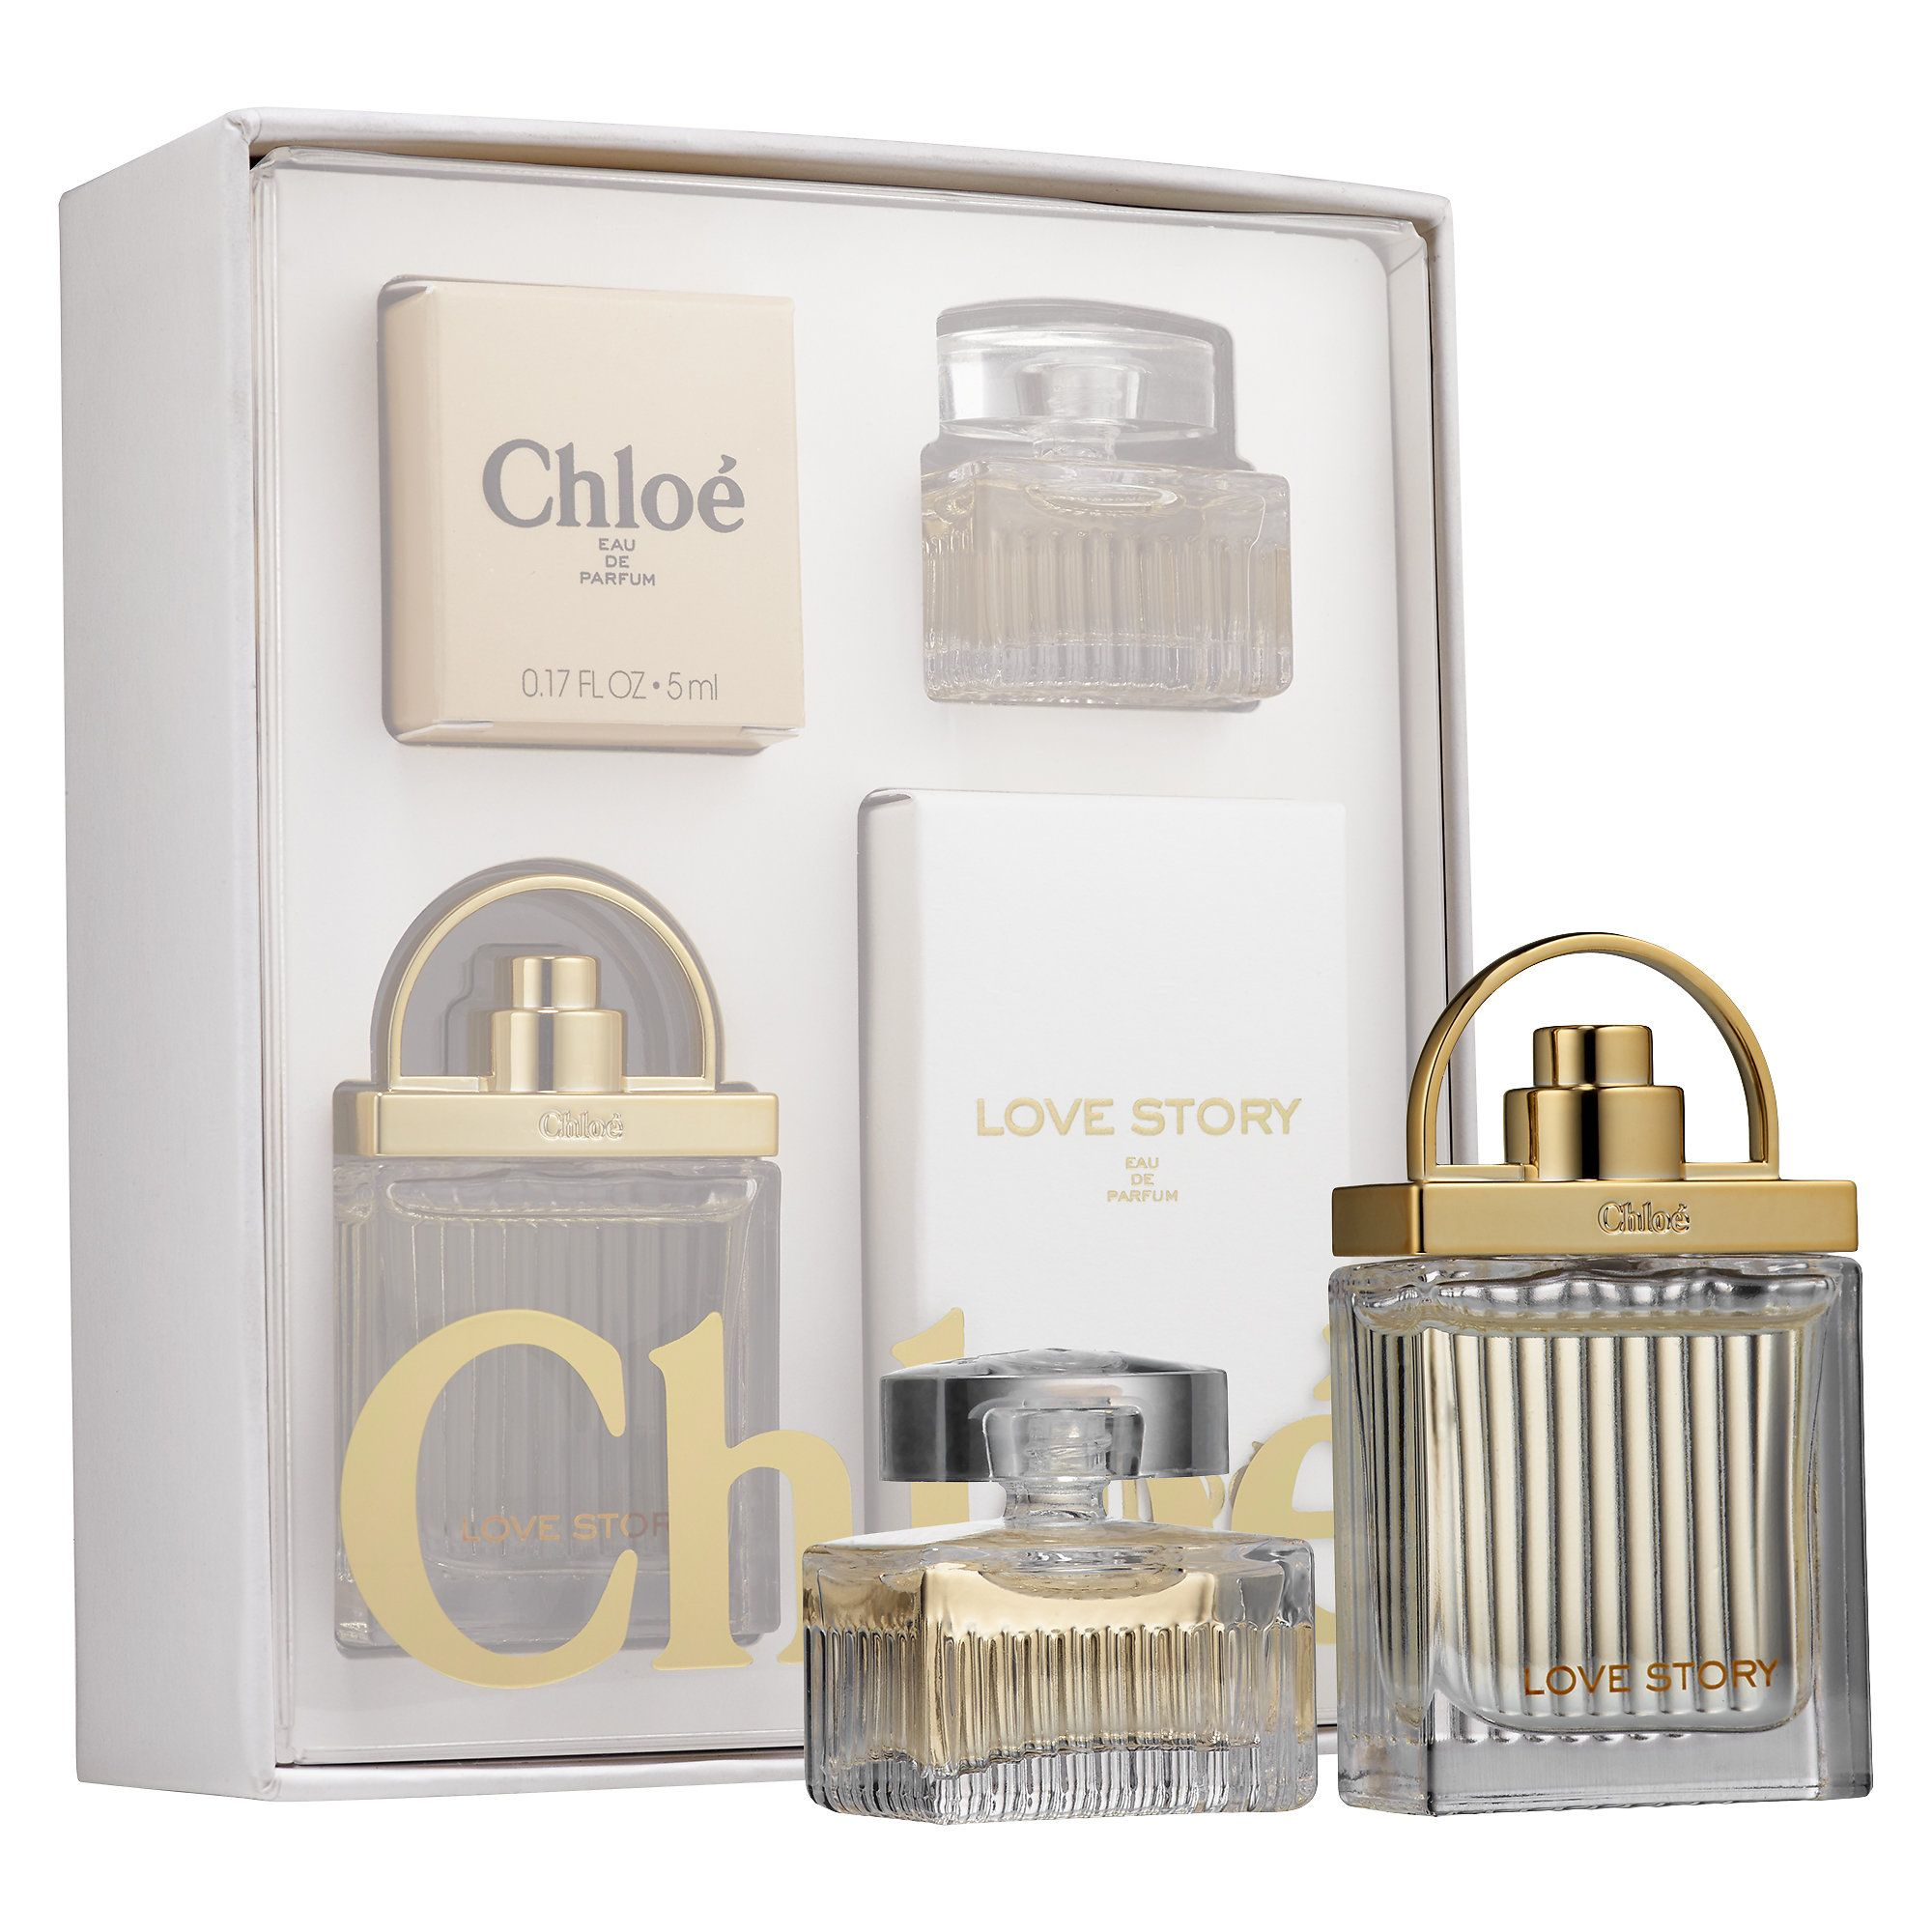 Chloe perfume - a great gift for a woman 37